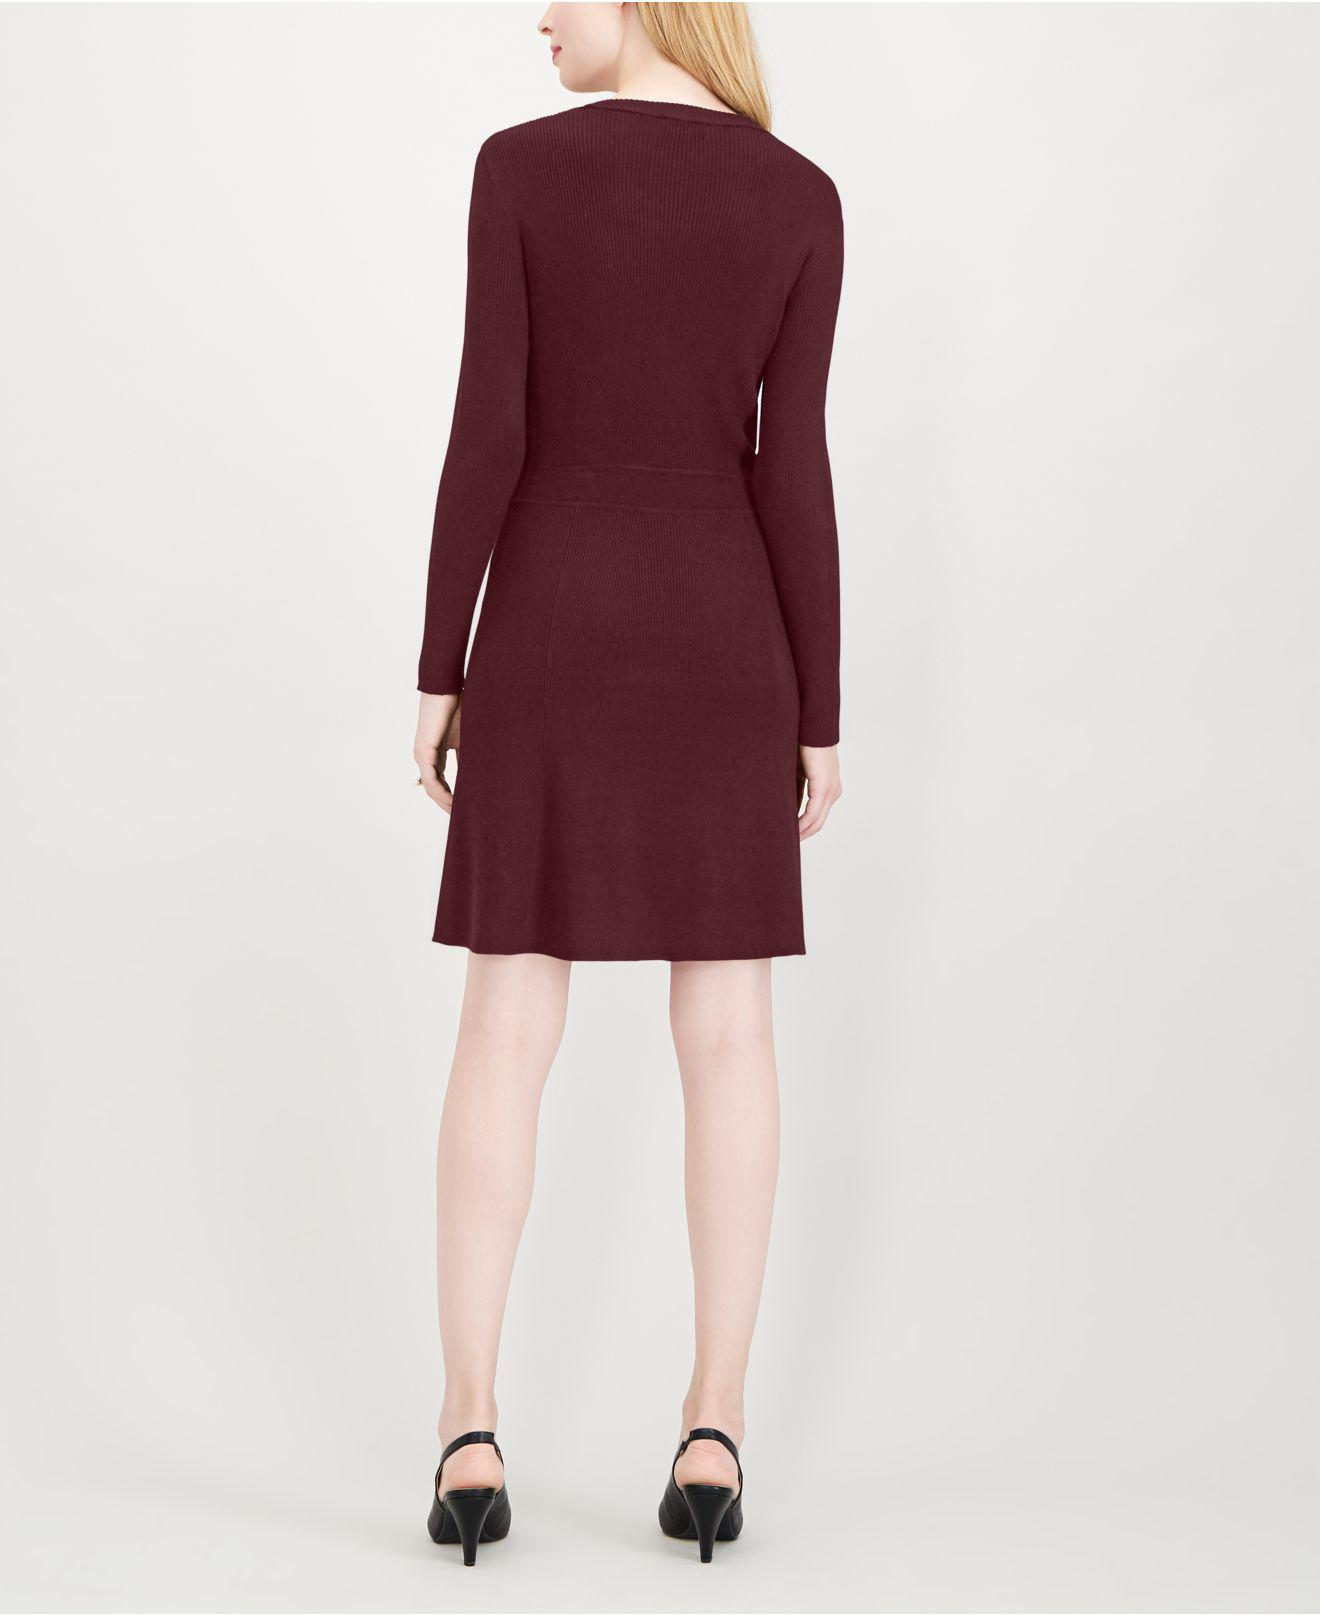 6aa5eb9075a6 Lyst - Maison Jules Ribbed Sweater Dress